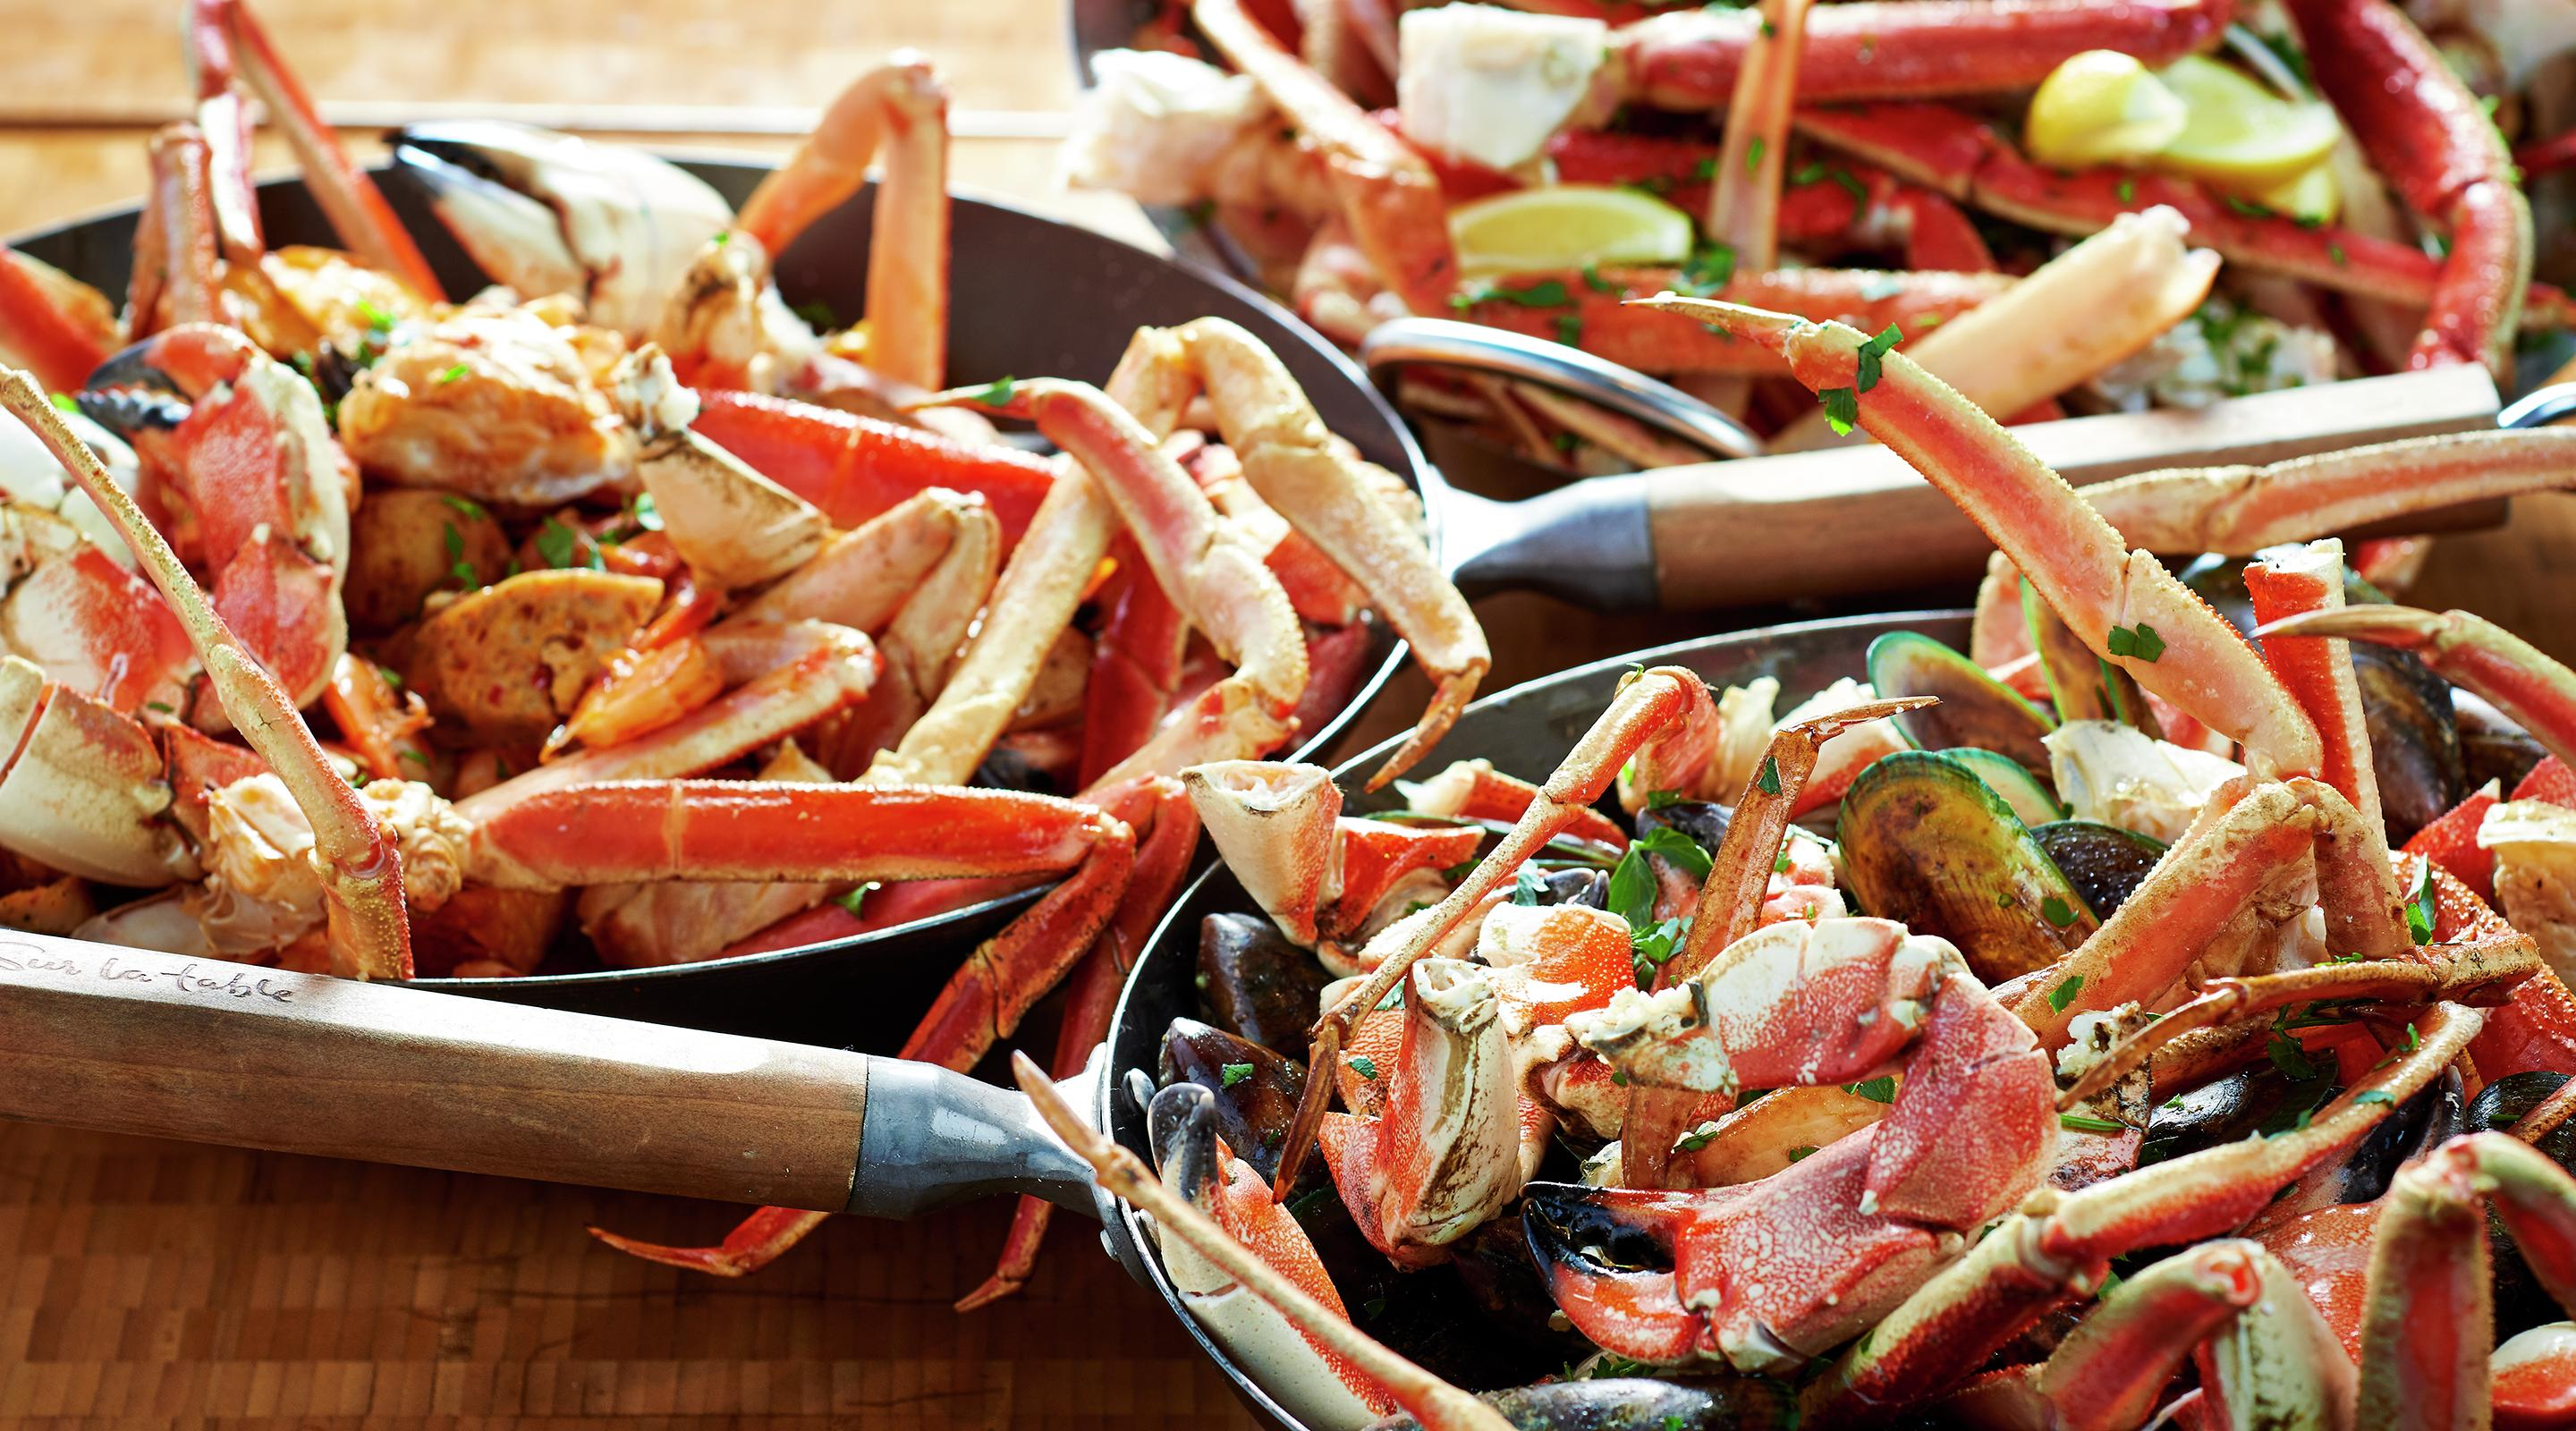 Enjoy crab at the ARIA Buffet.